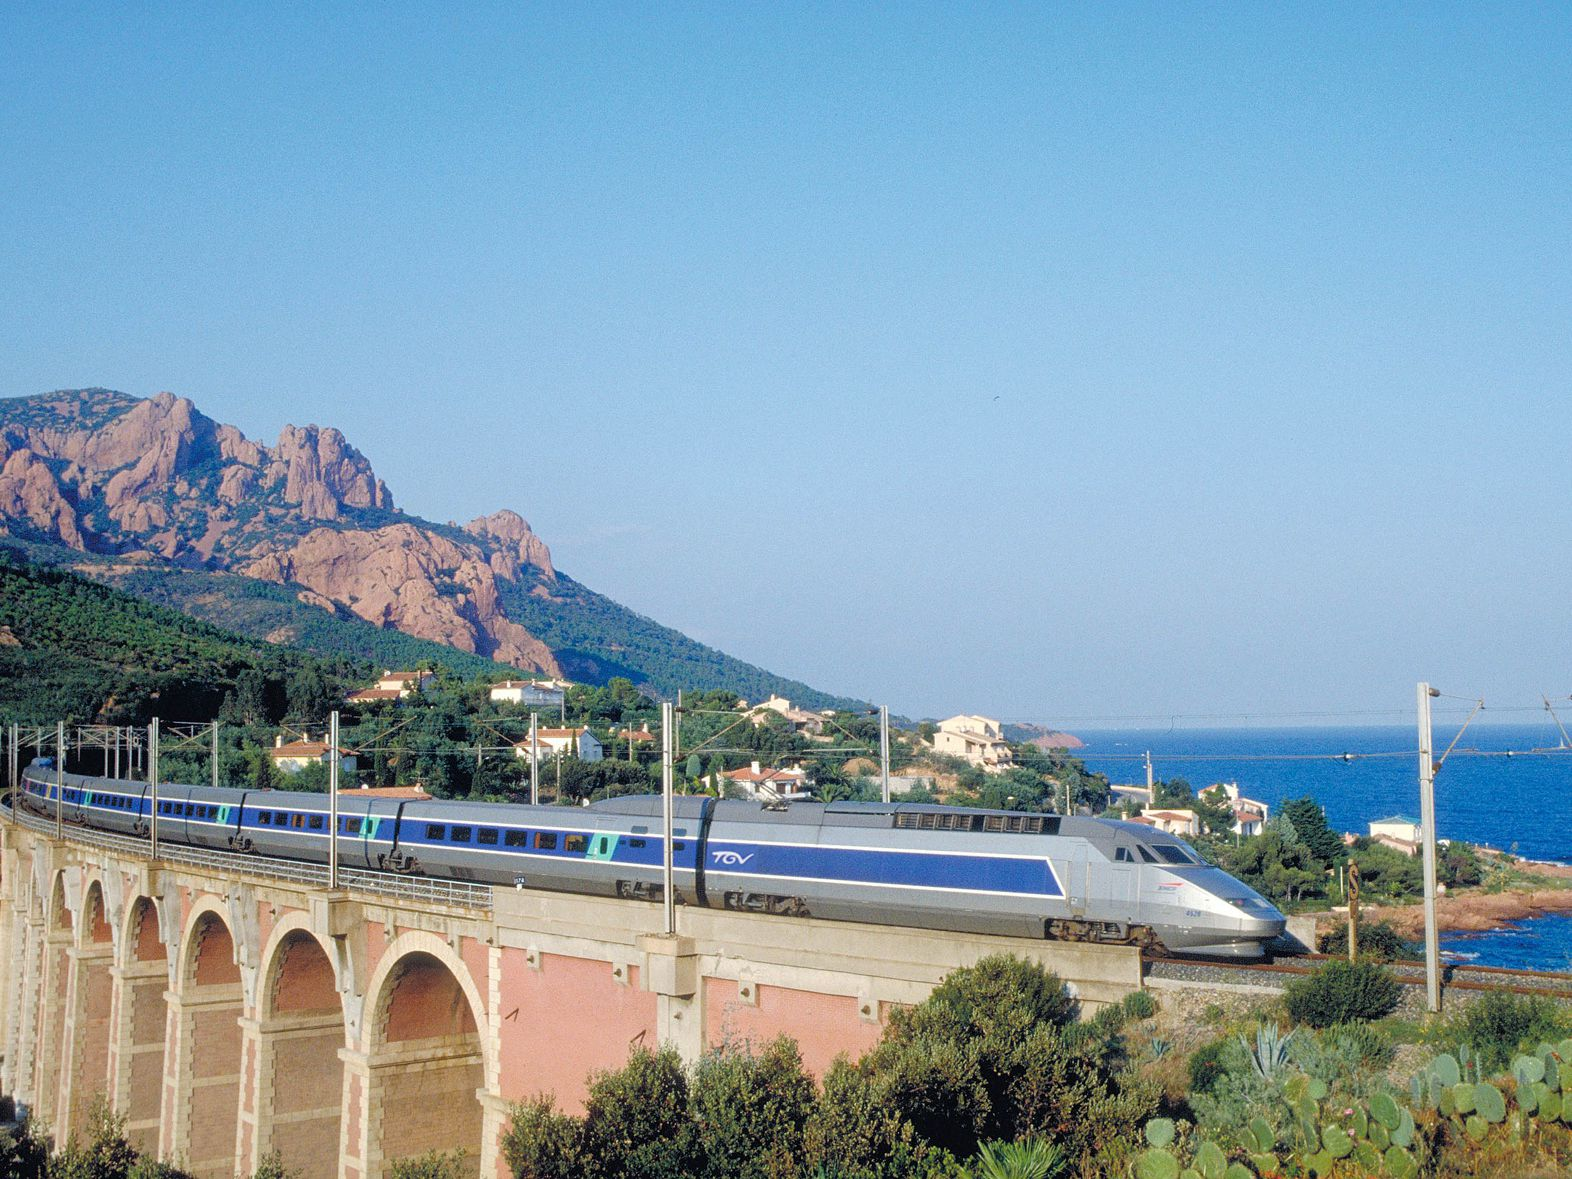 How to Get from Paris to Toulon on the French Riviera